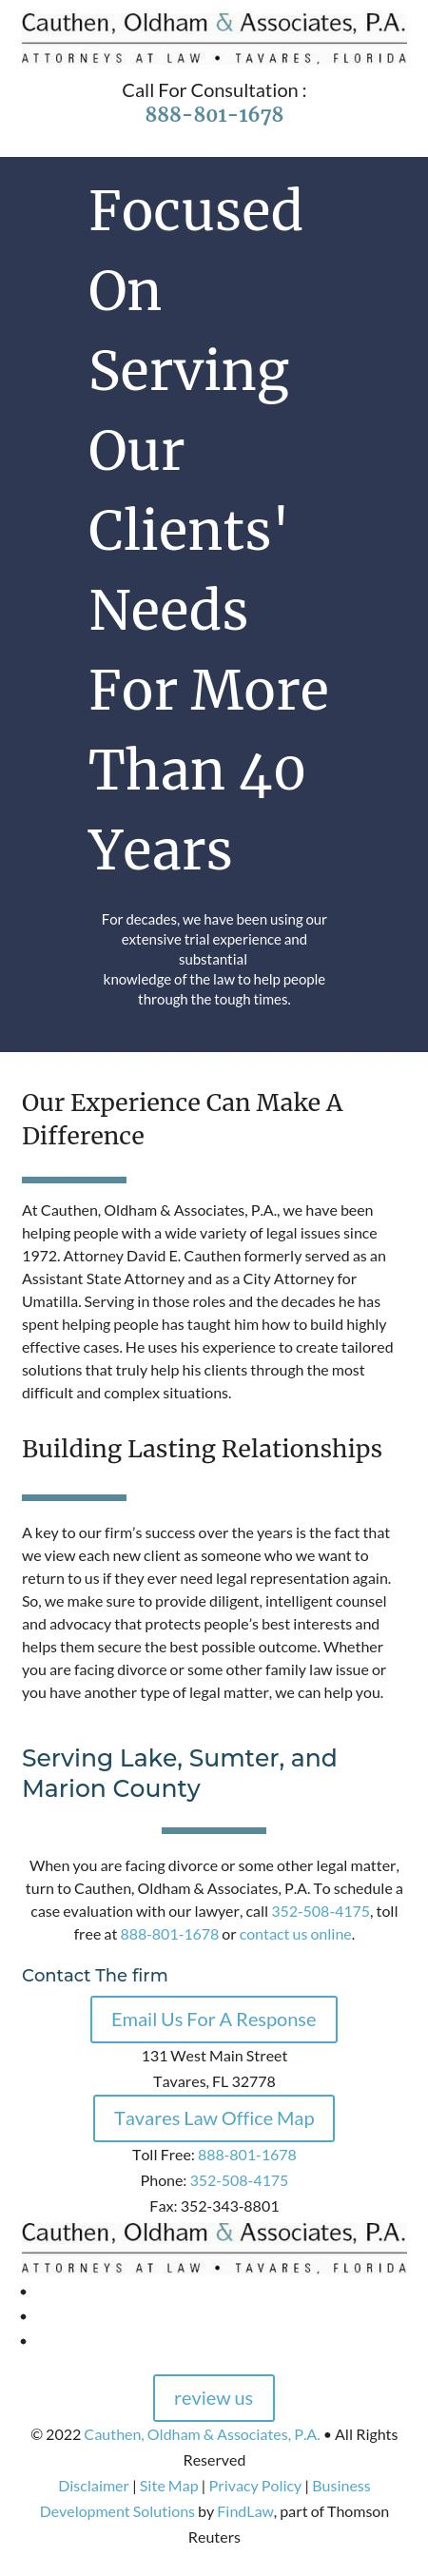 Cauthen, Oldham & Associates, P.A. - Tavares FL Lawyers